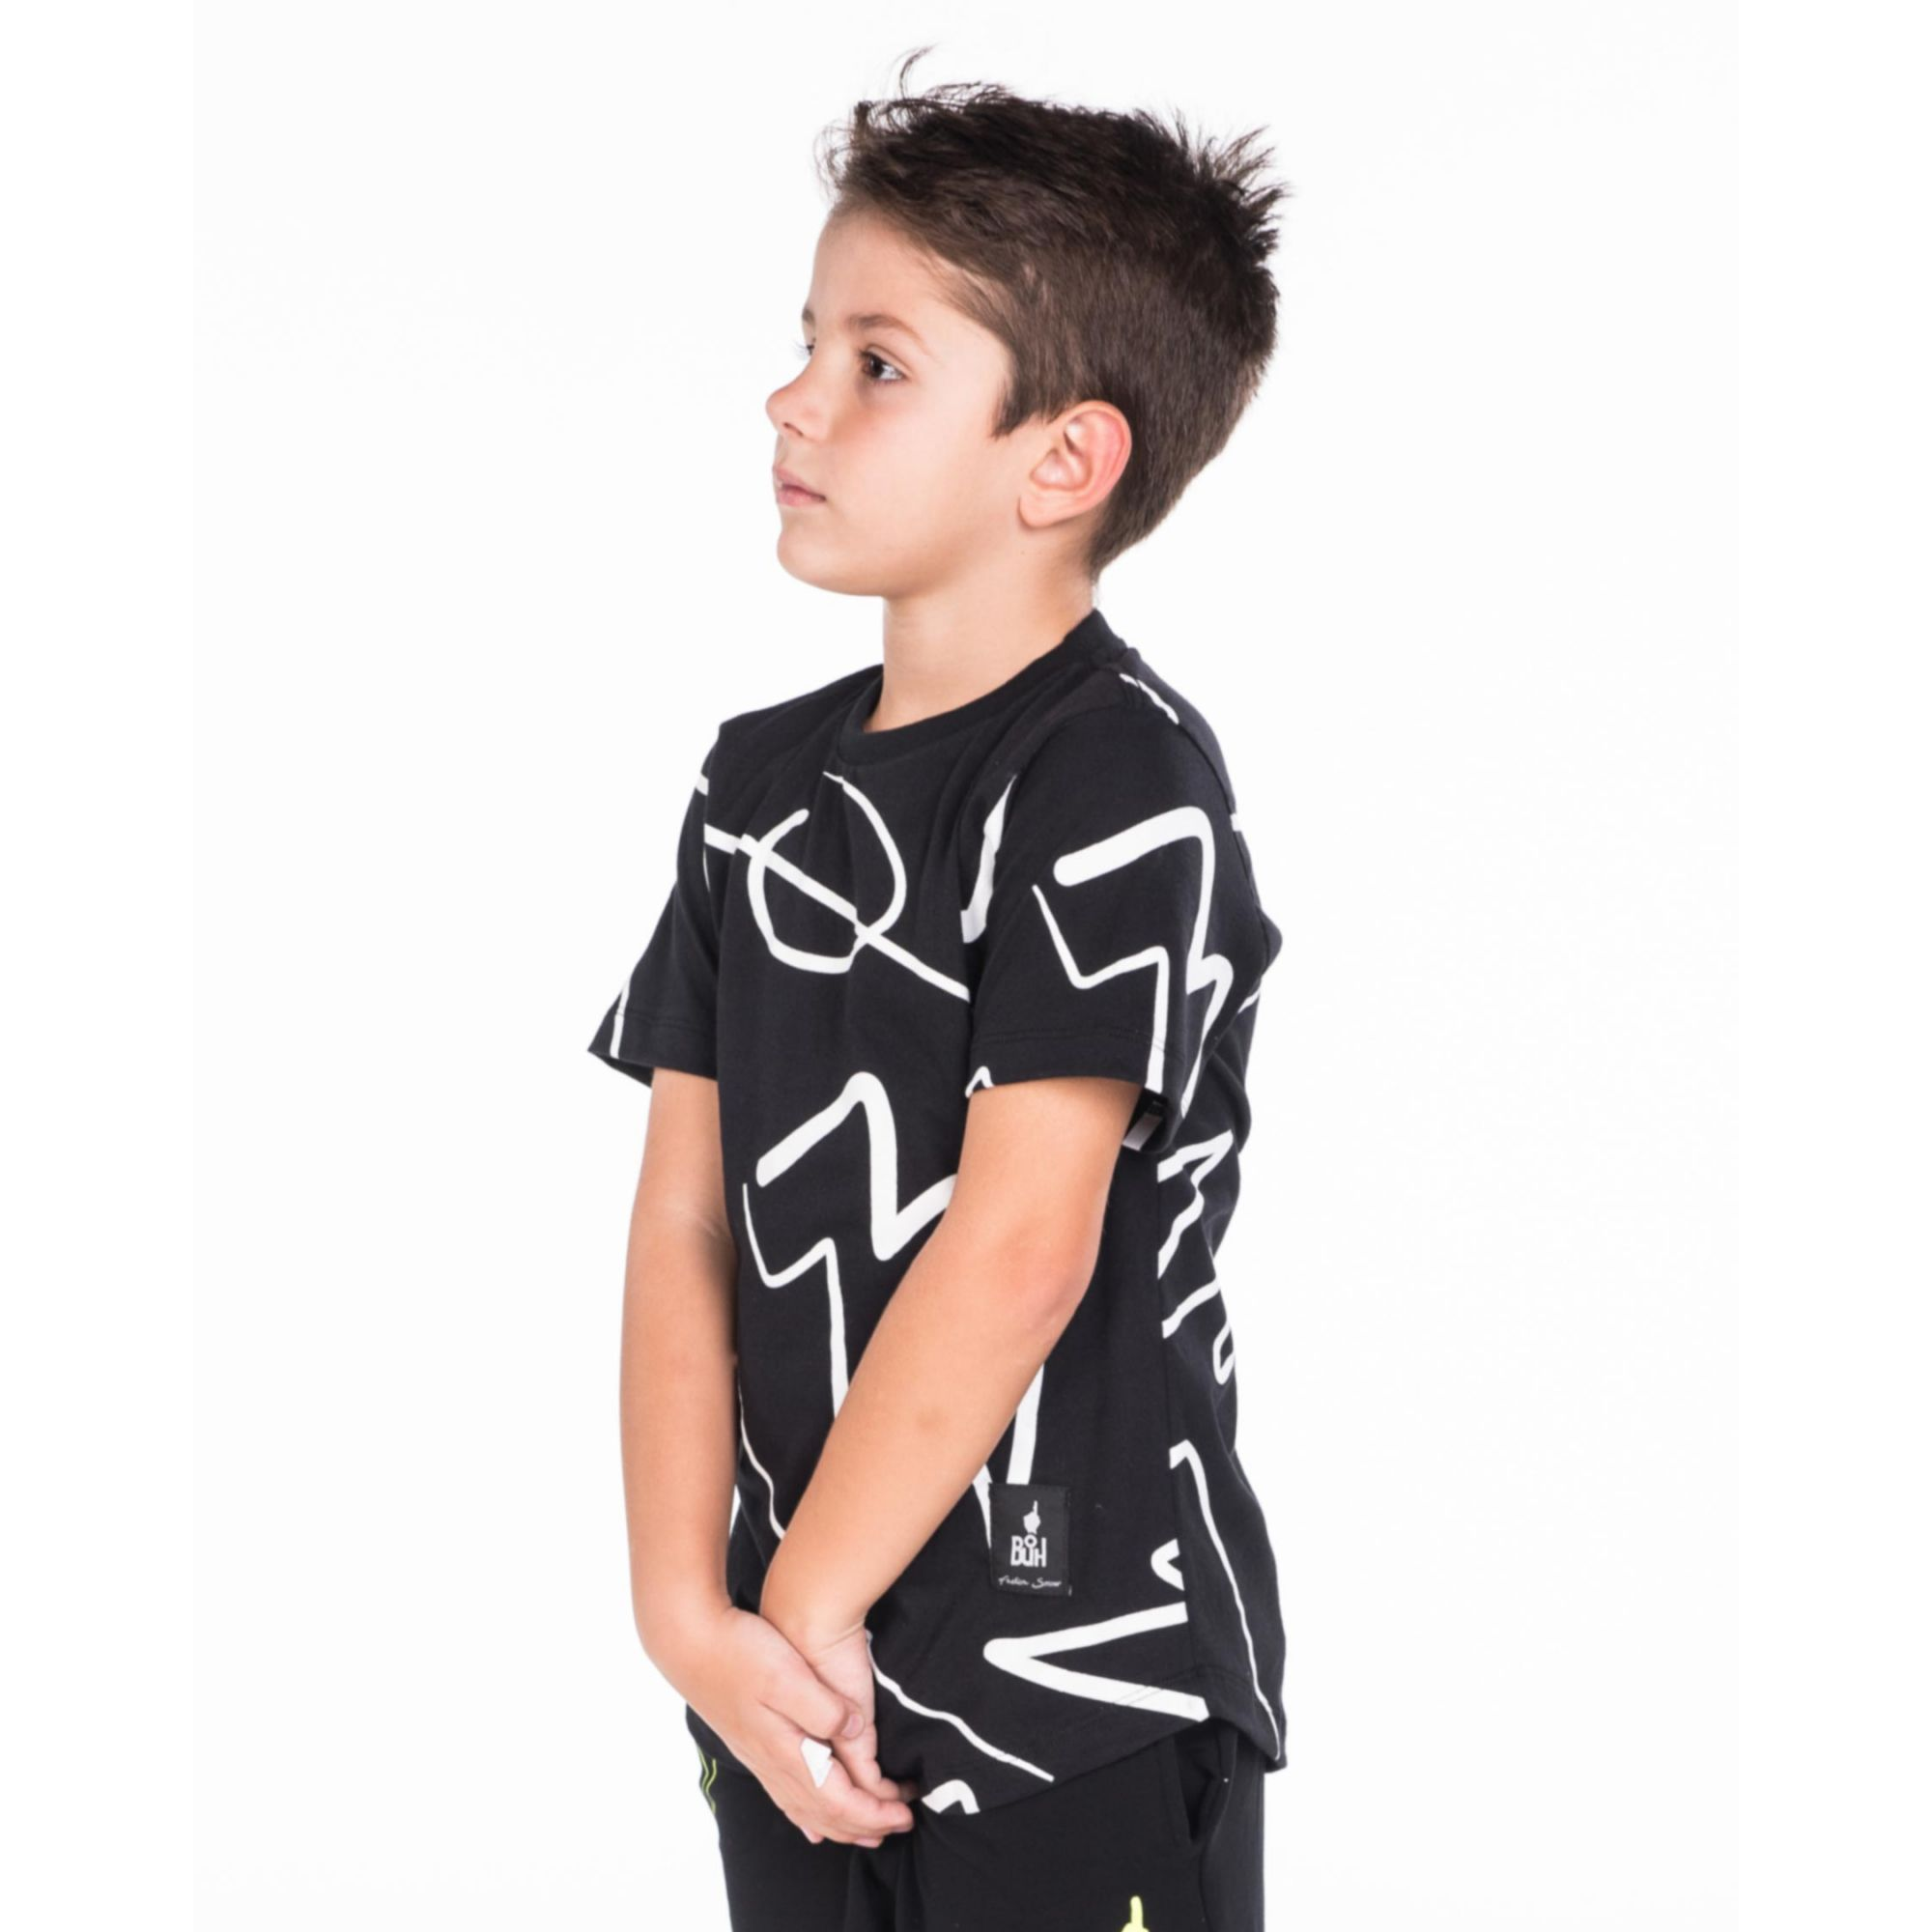 Camiseta Buh Kids Full Rabiscos Black